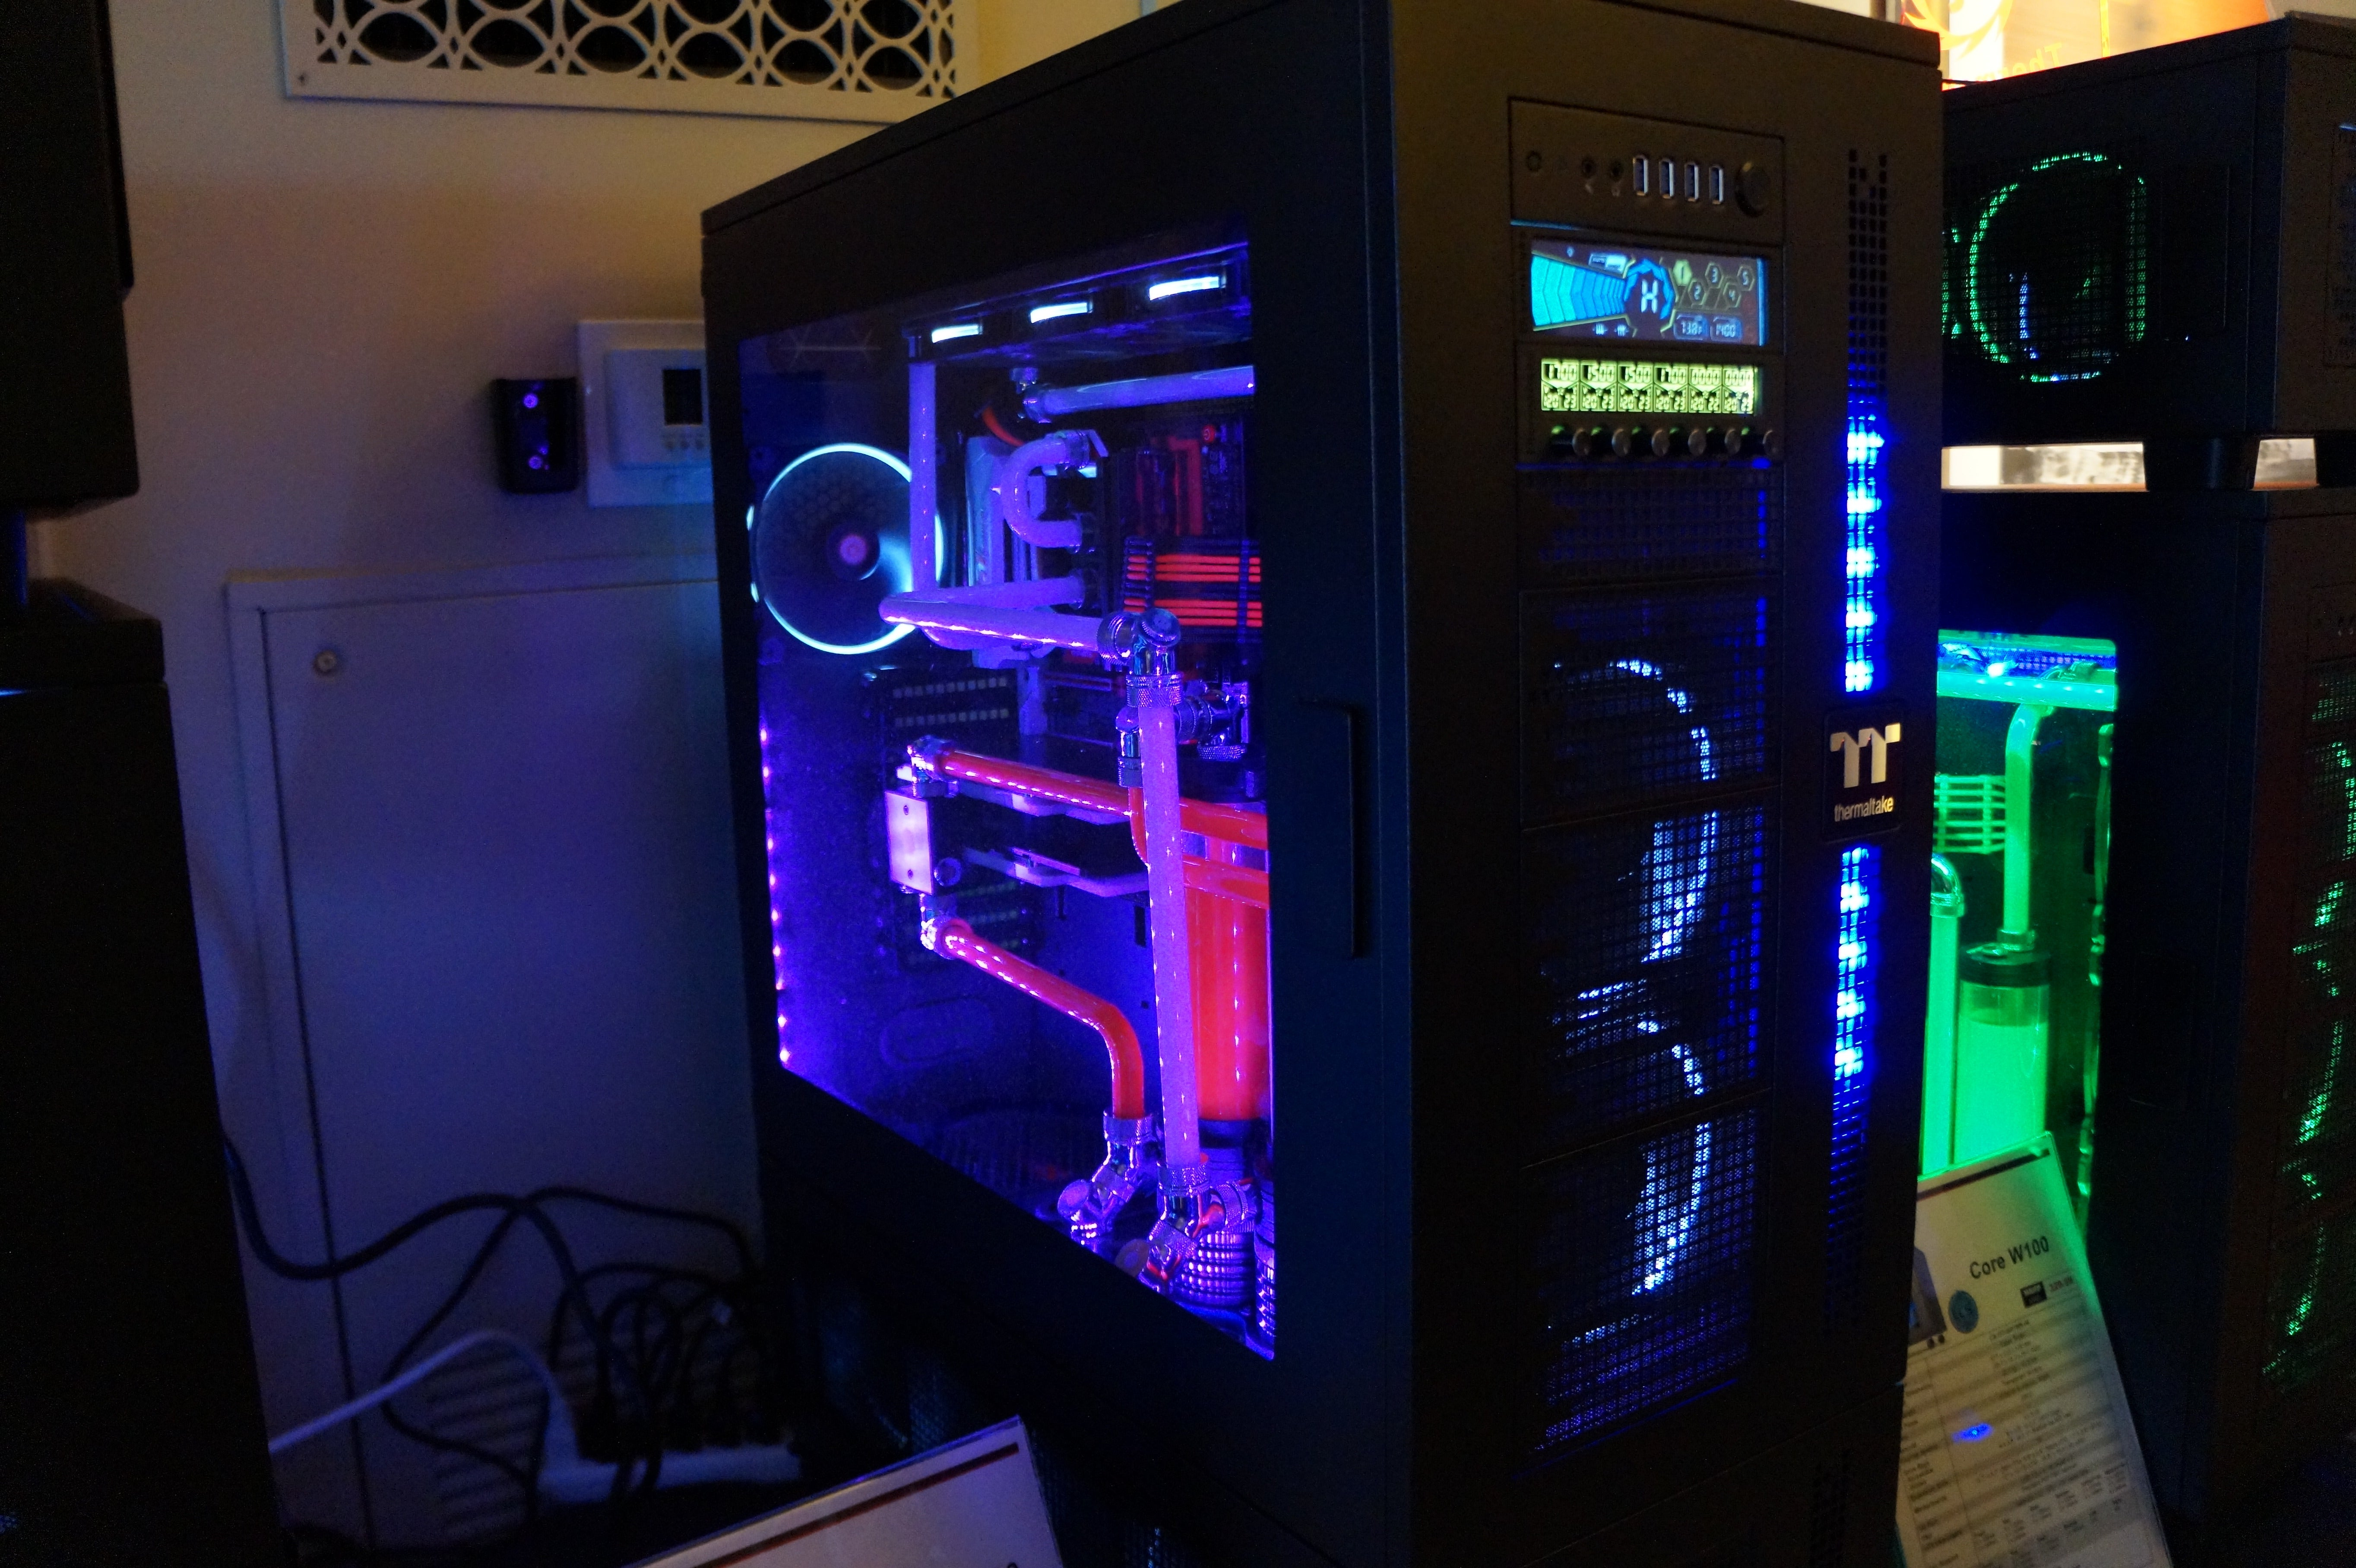 The Killer Case Mods And Tricked Out Pcs Of Ces 2016 Pcworld